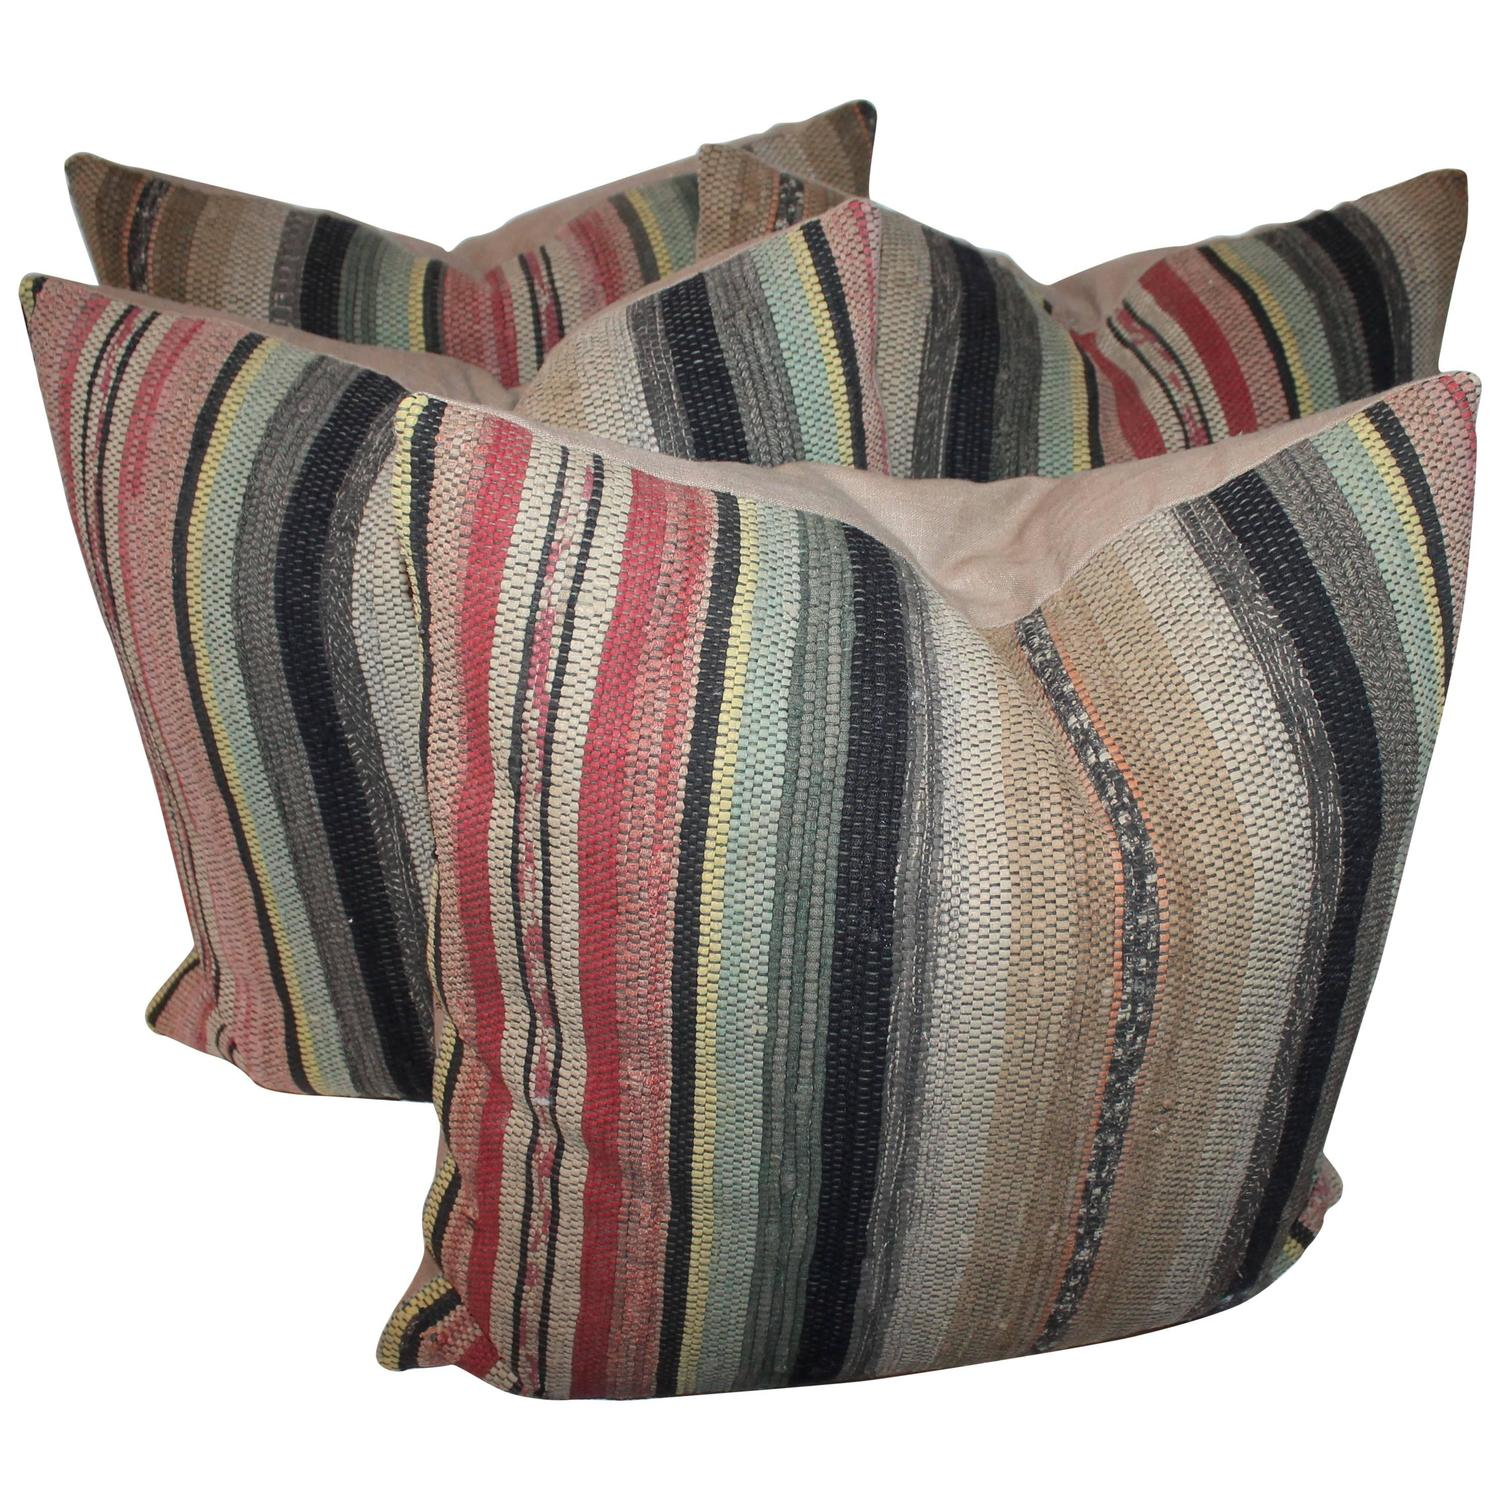 Pair Of 19th Century Rag Rug Pillows For Sale At 1stdibs